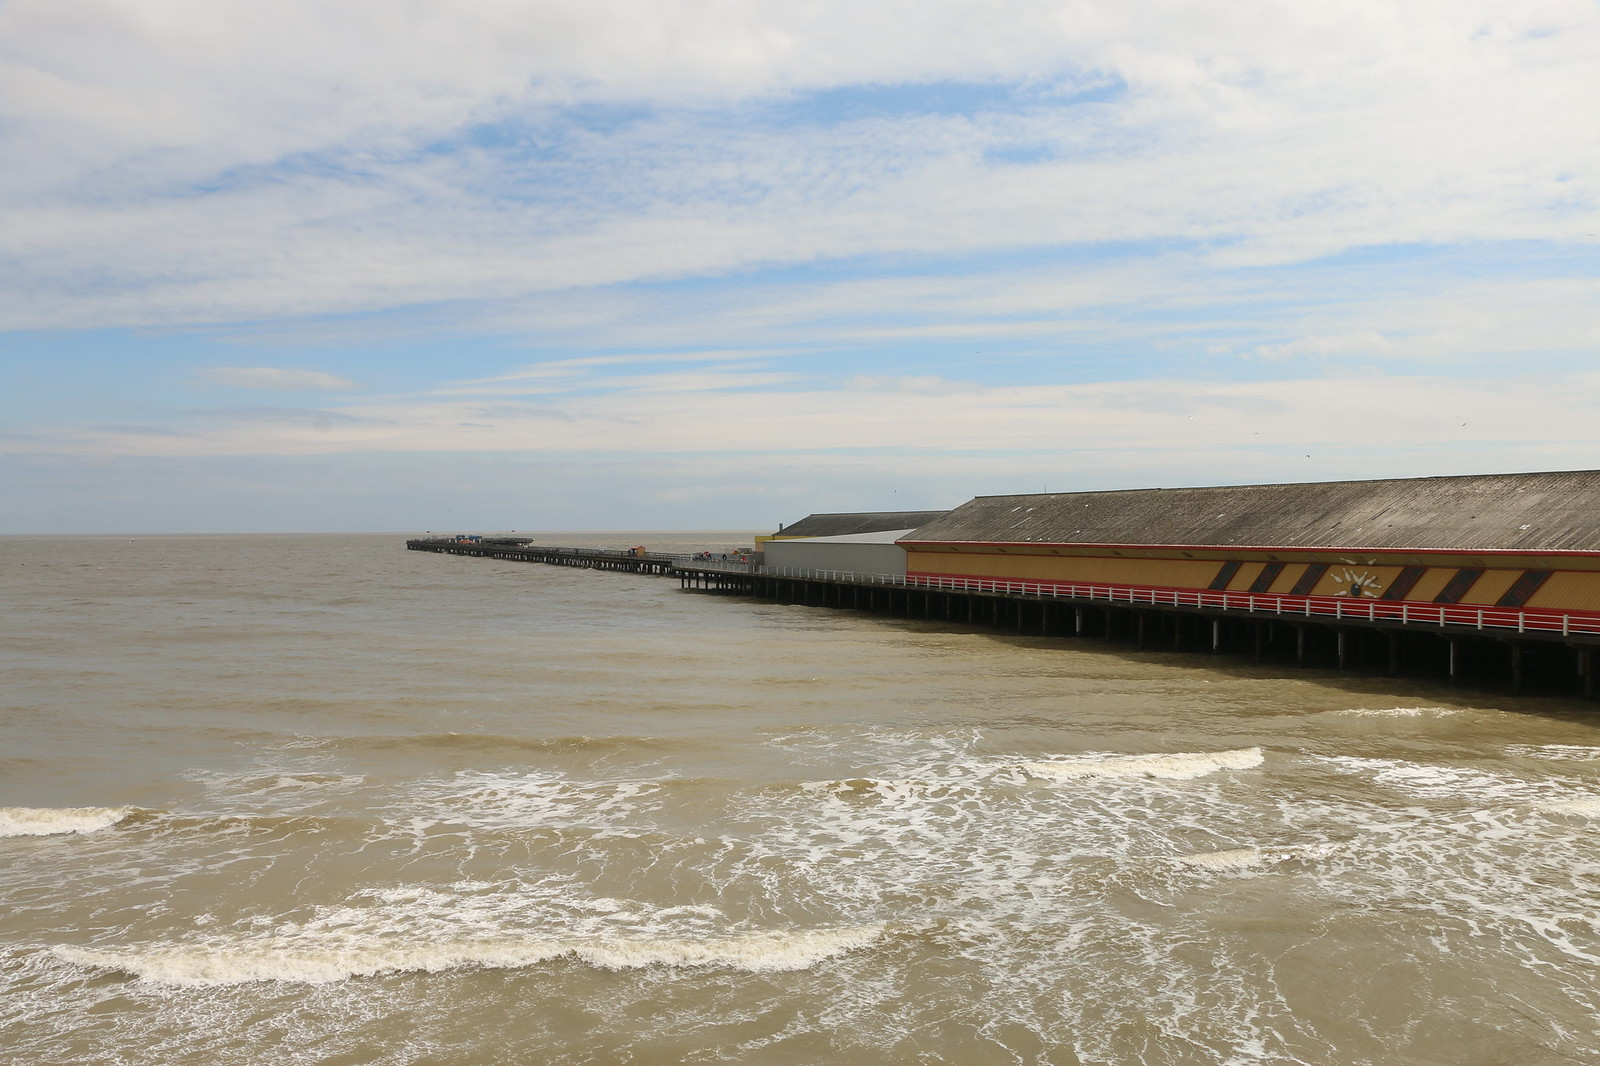 Walton Pier, Walton-on-the-Naze